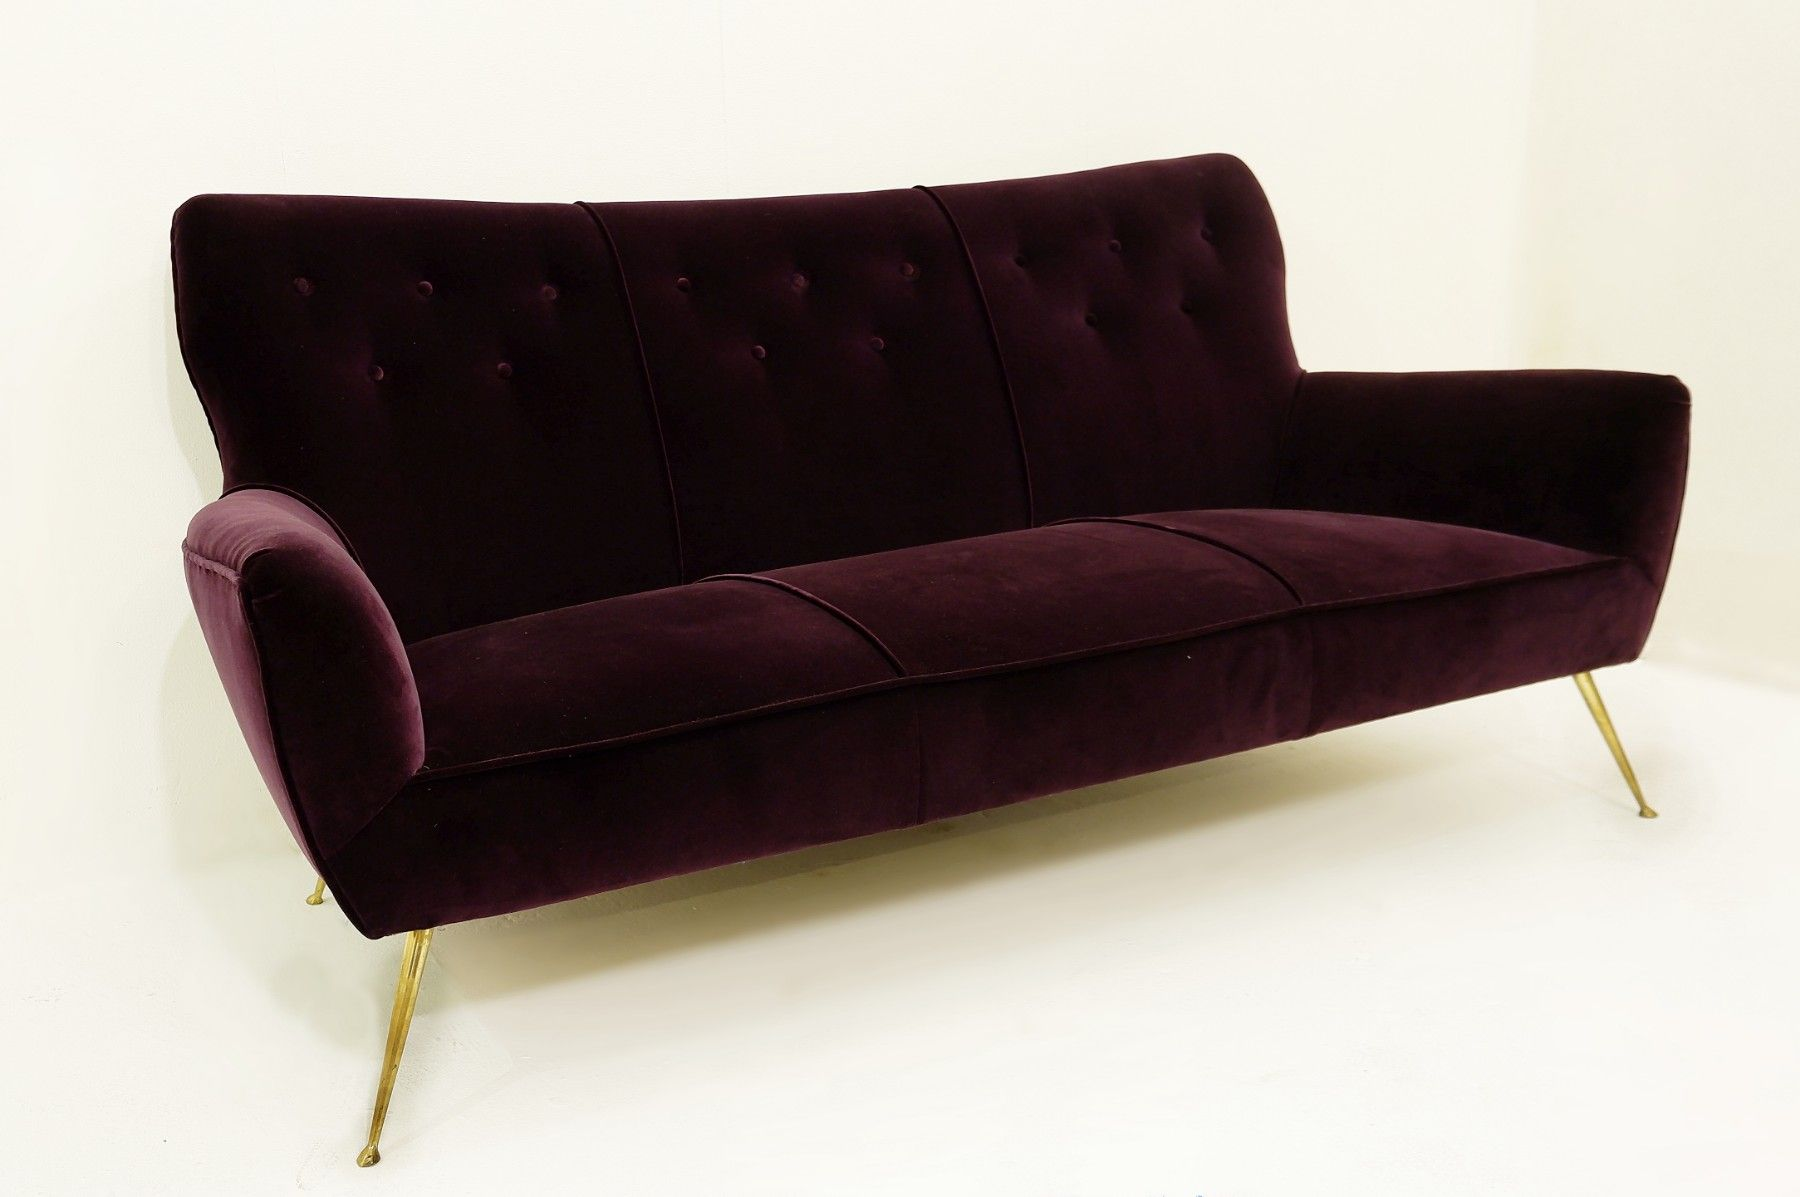 Marvelous Italian Vintage Sofa In Burgundy Velvet And Brass 1950 Machost Co Dining Chair Design Ideas Machostcouk